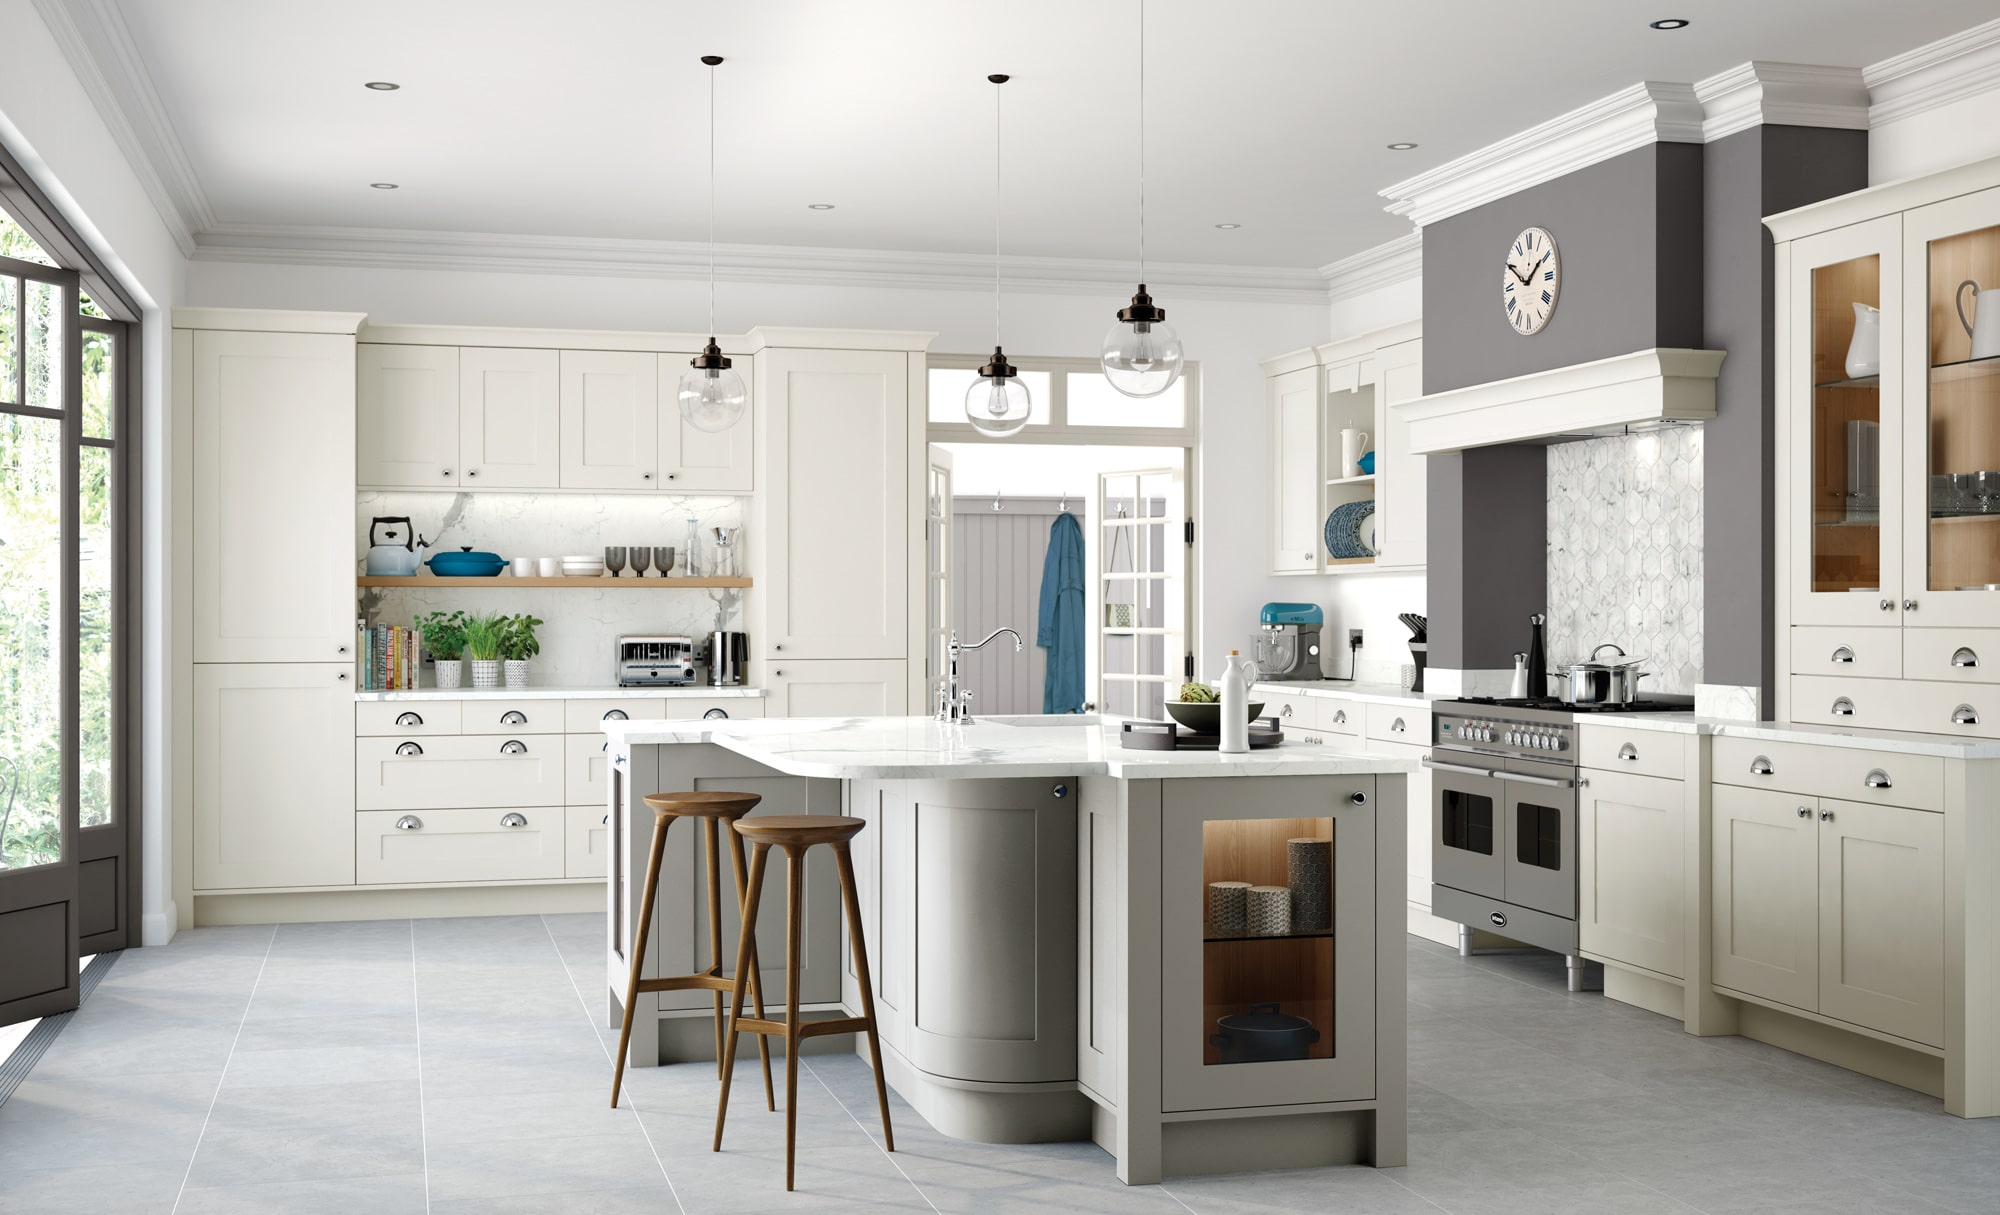 Burleigh painted porcelain stone kitchen main from Riley James Kitchens Gloucestershire